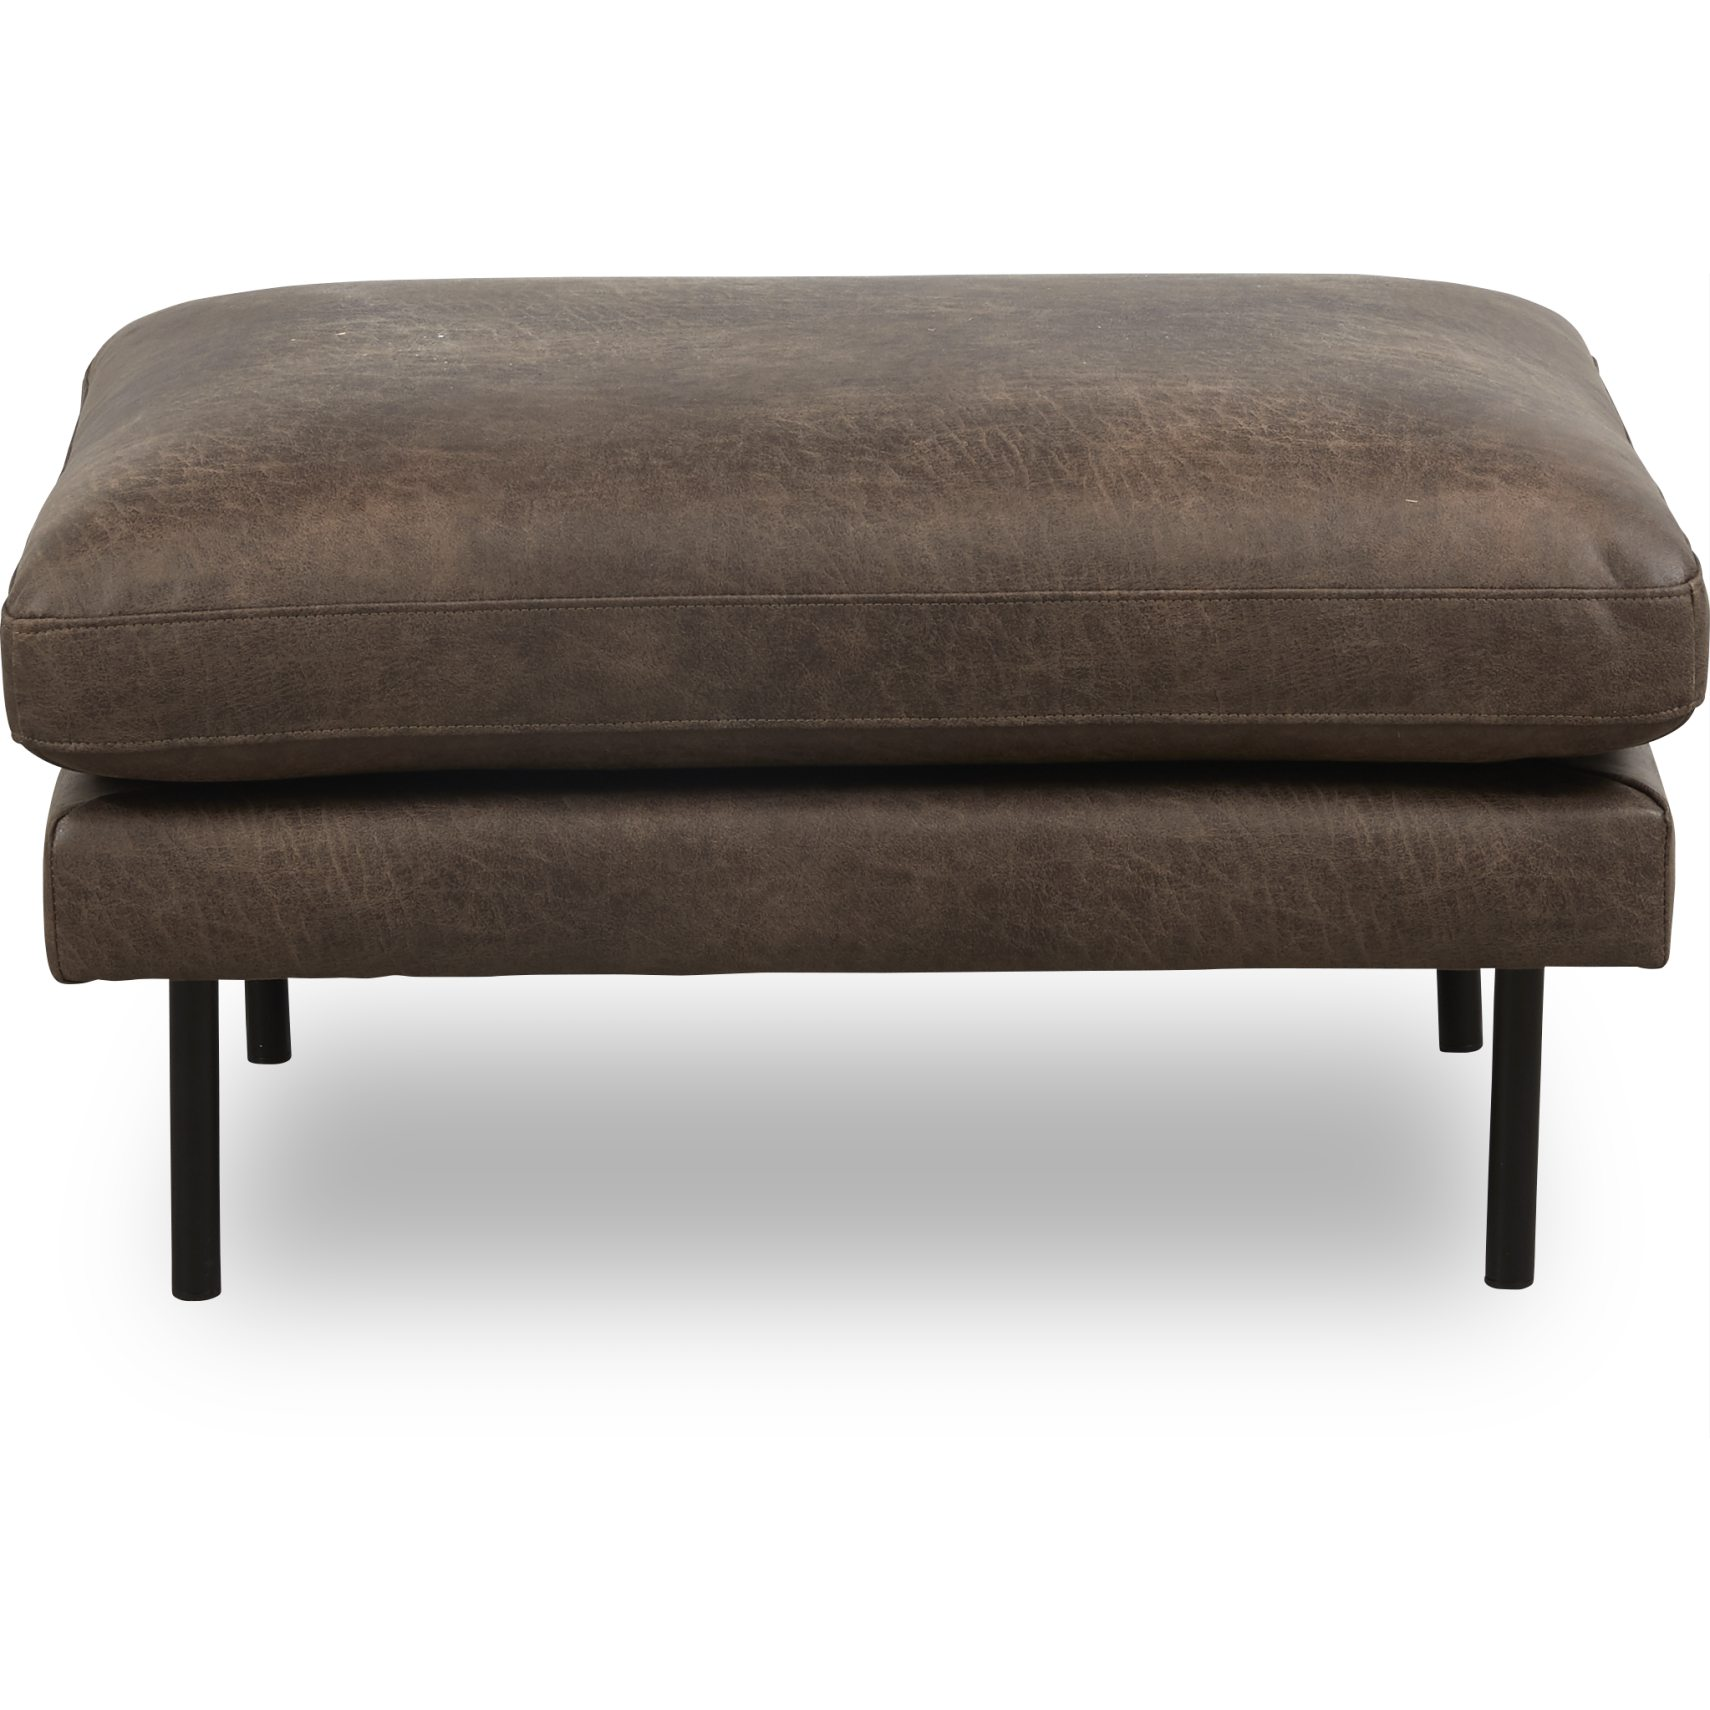 Sicilia Sofa puf - Colorado 4 Brown bonded læder og ben i sort metal